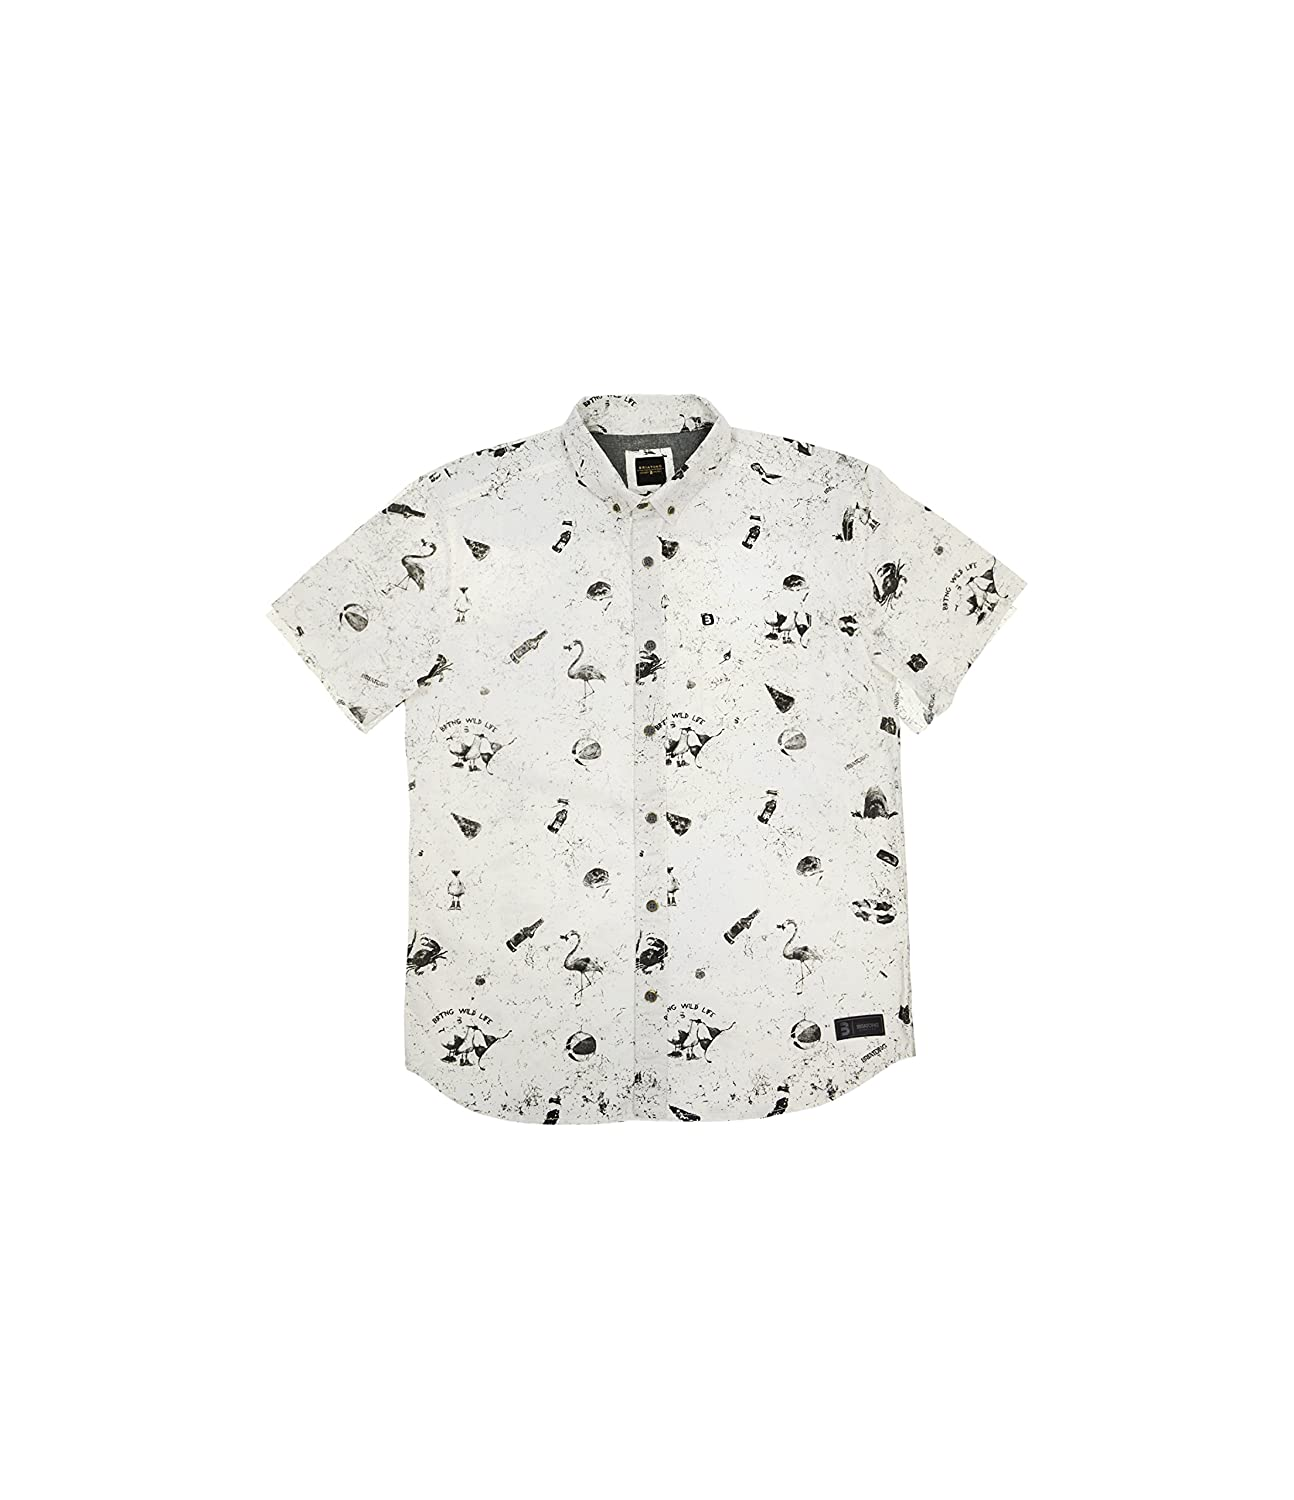 Slim Fit Briatong Primary Button up 100/% Premium Cotton Made in Peru Short Sleeve